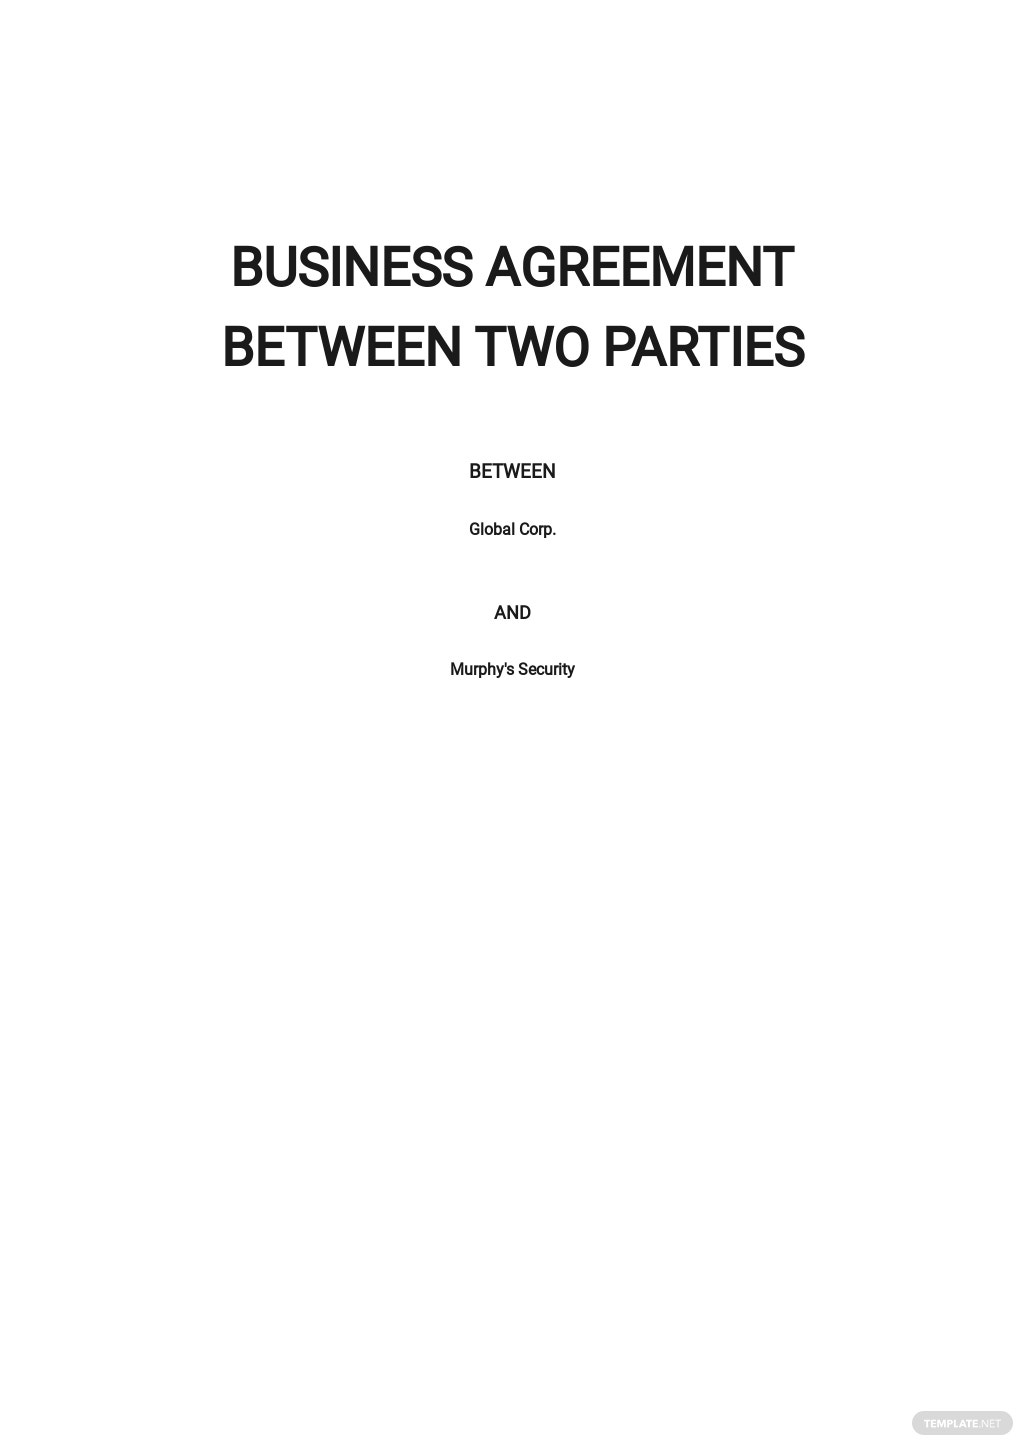 Business Agreement between Two Parties Template.jpe